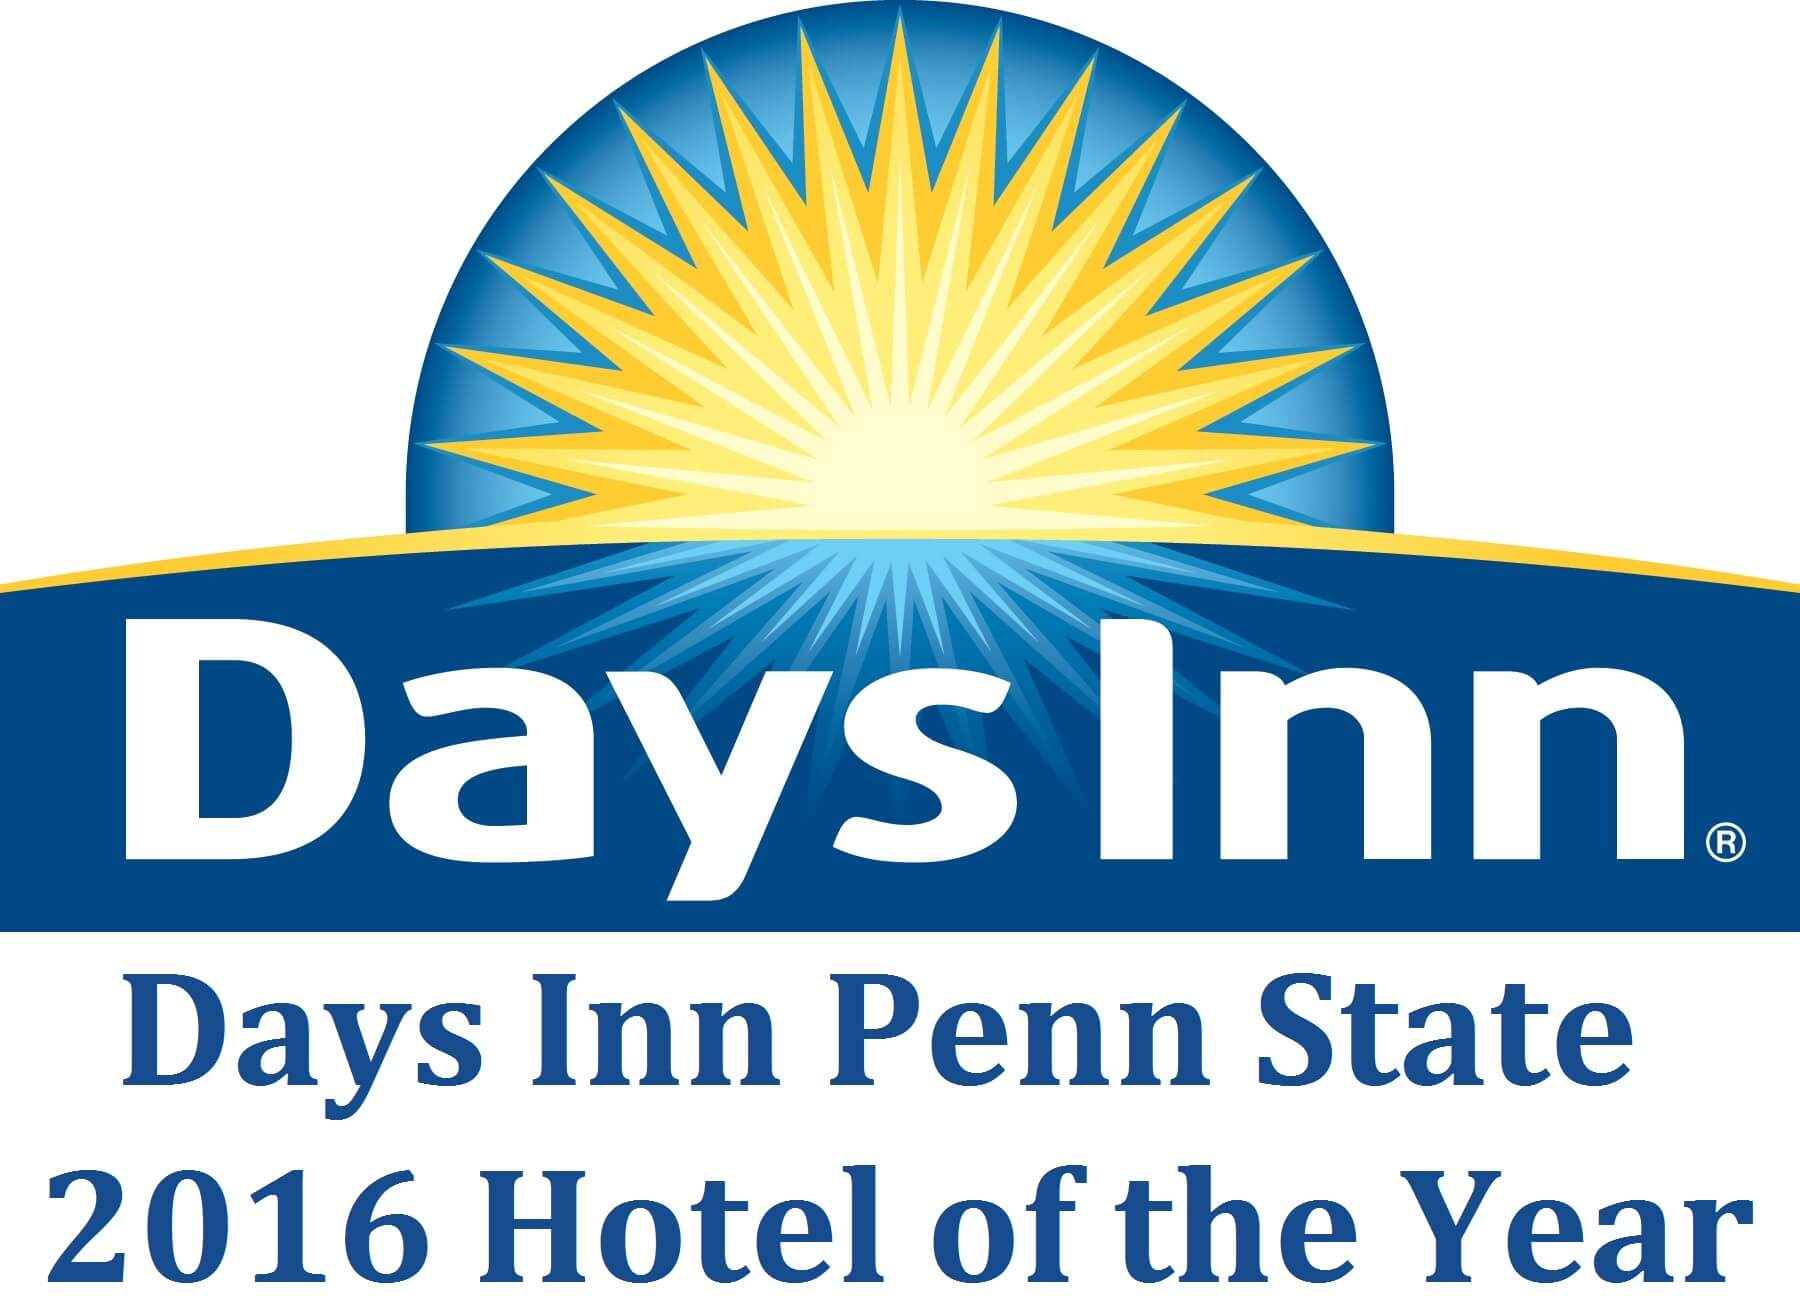 2016 Hotel of the Year Days Inn Penn State